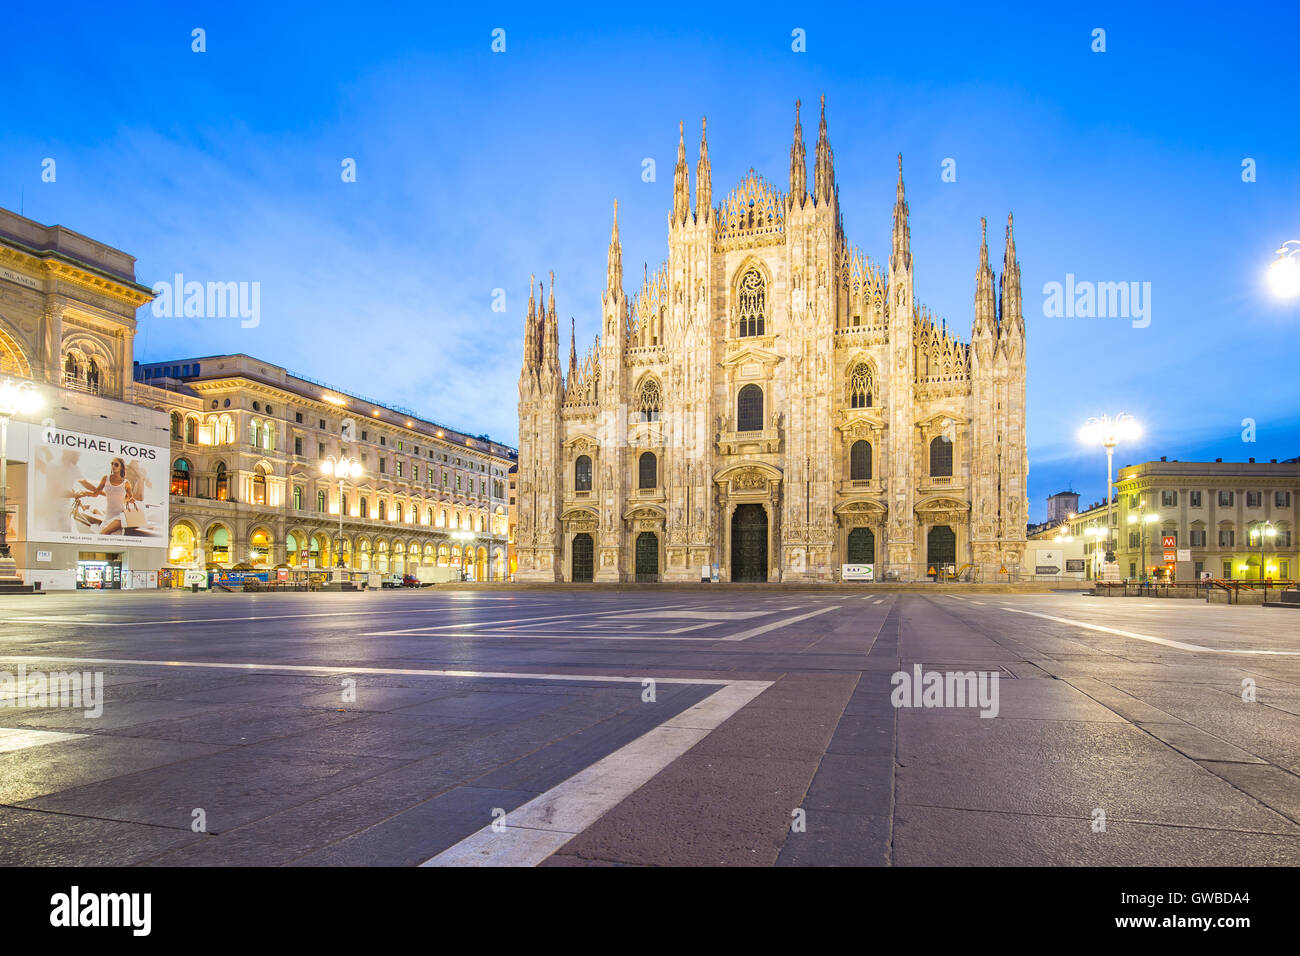 The Duomo of Milan Cathedral in Milano, Italy. - Stock Image